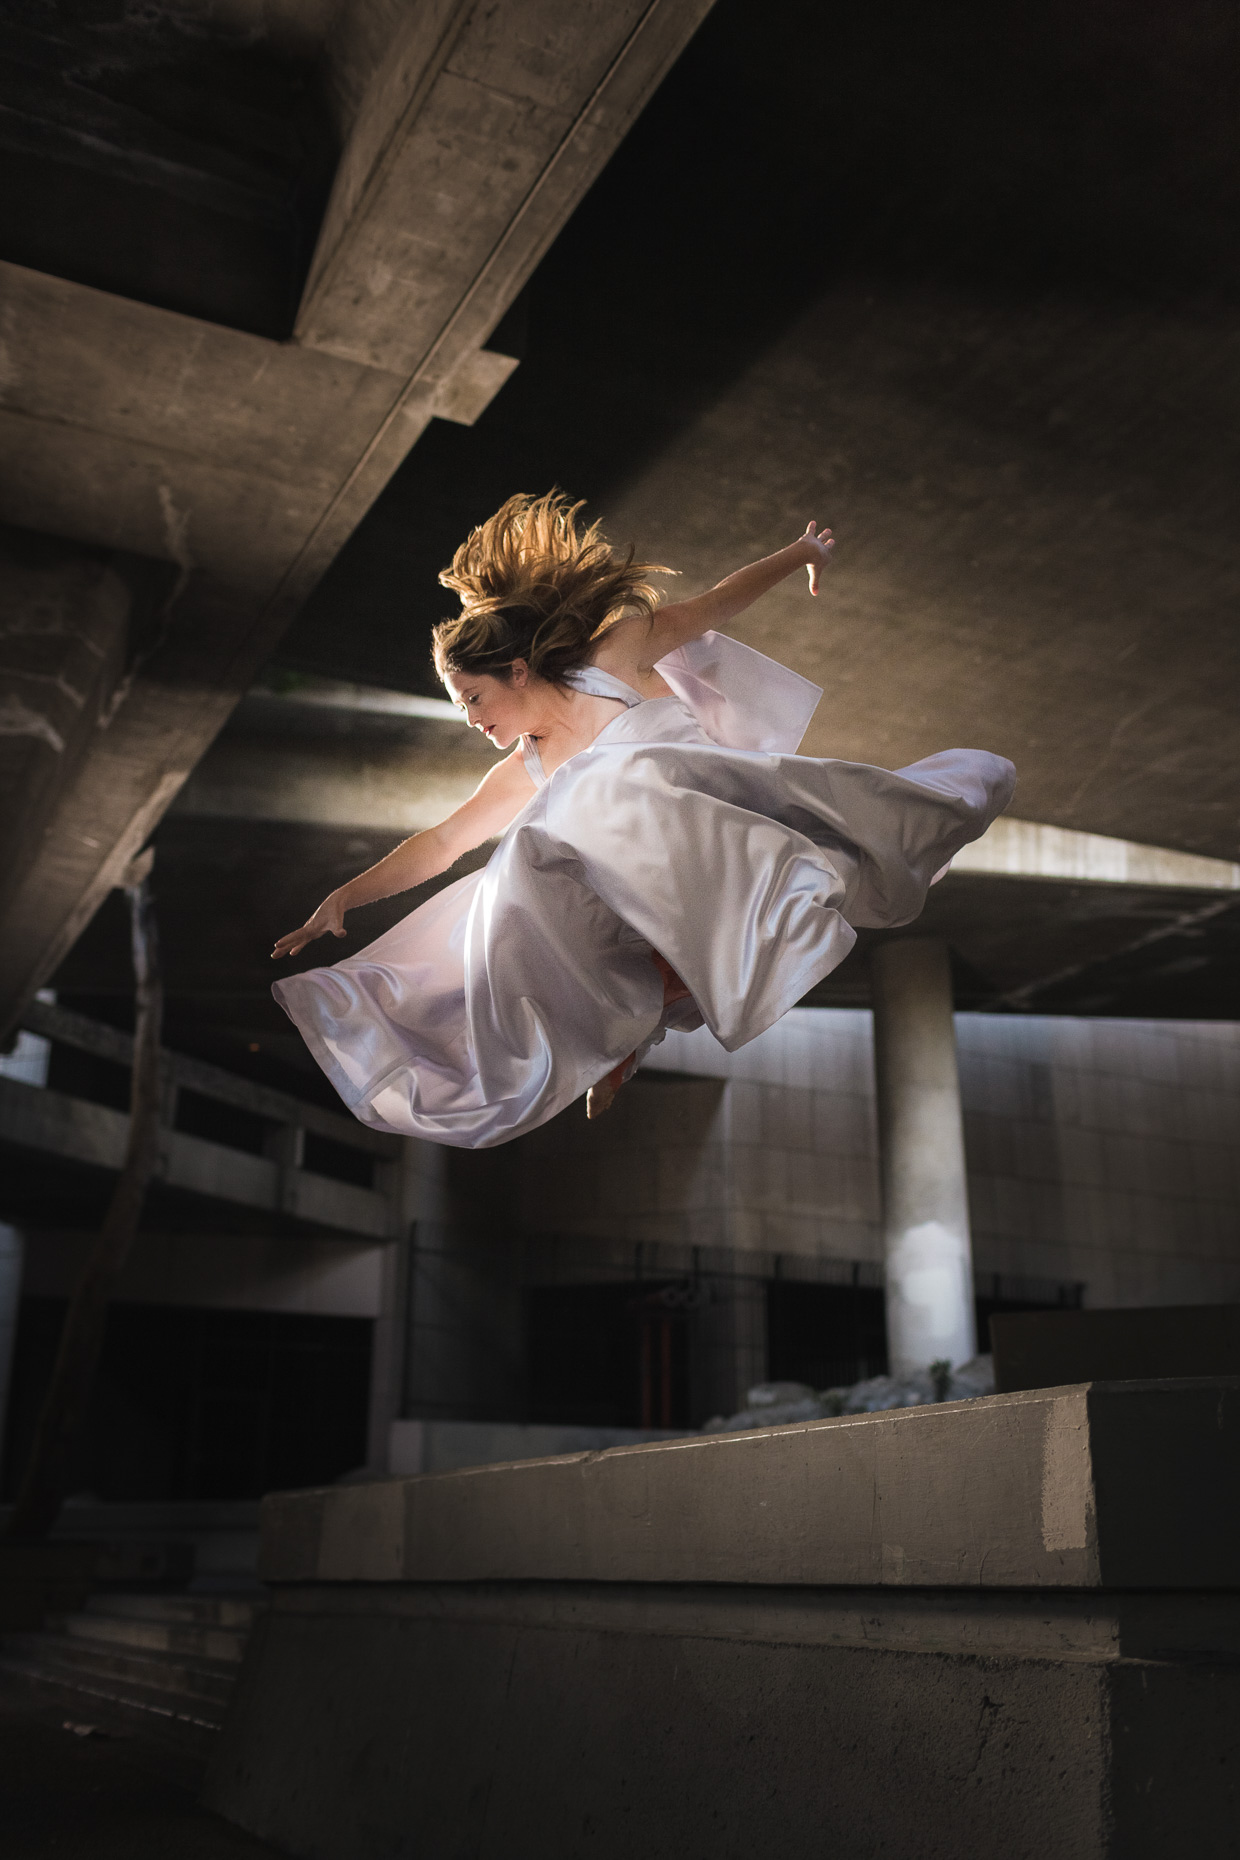 Luci Romberg freerunner parkour athlete in evening gown flying through the air under a bridge in downtown LA by andy batt